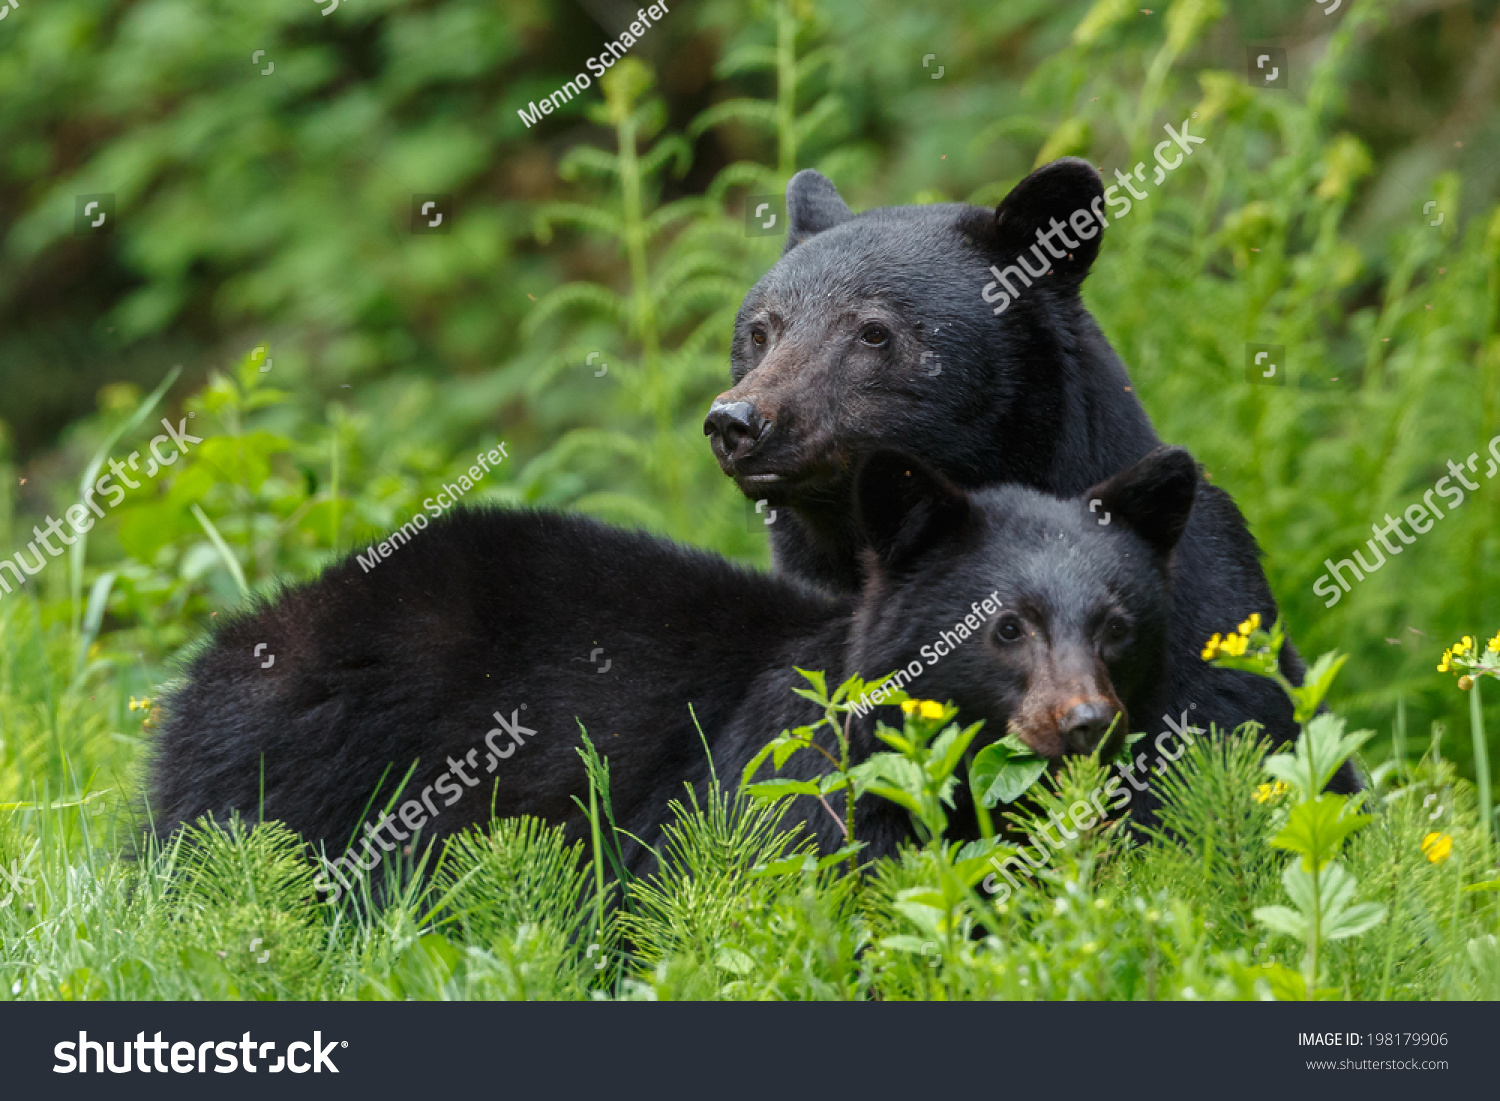 How much does a one year old black bear weight - answers.com